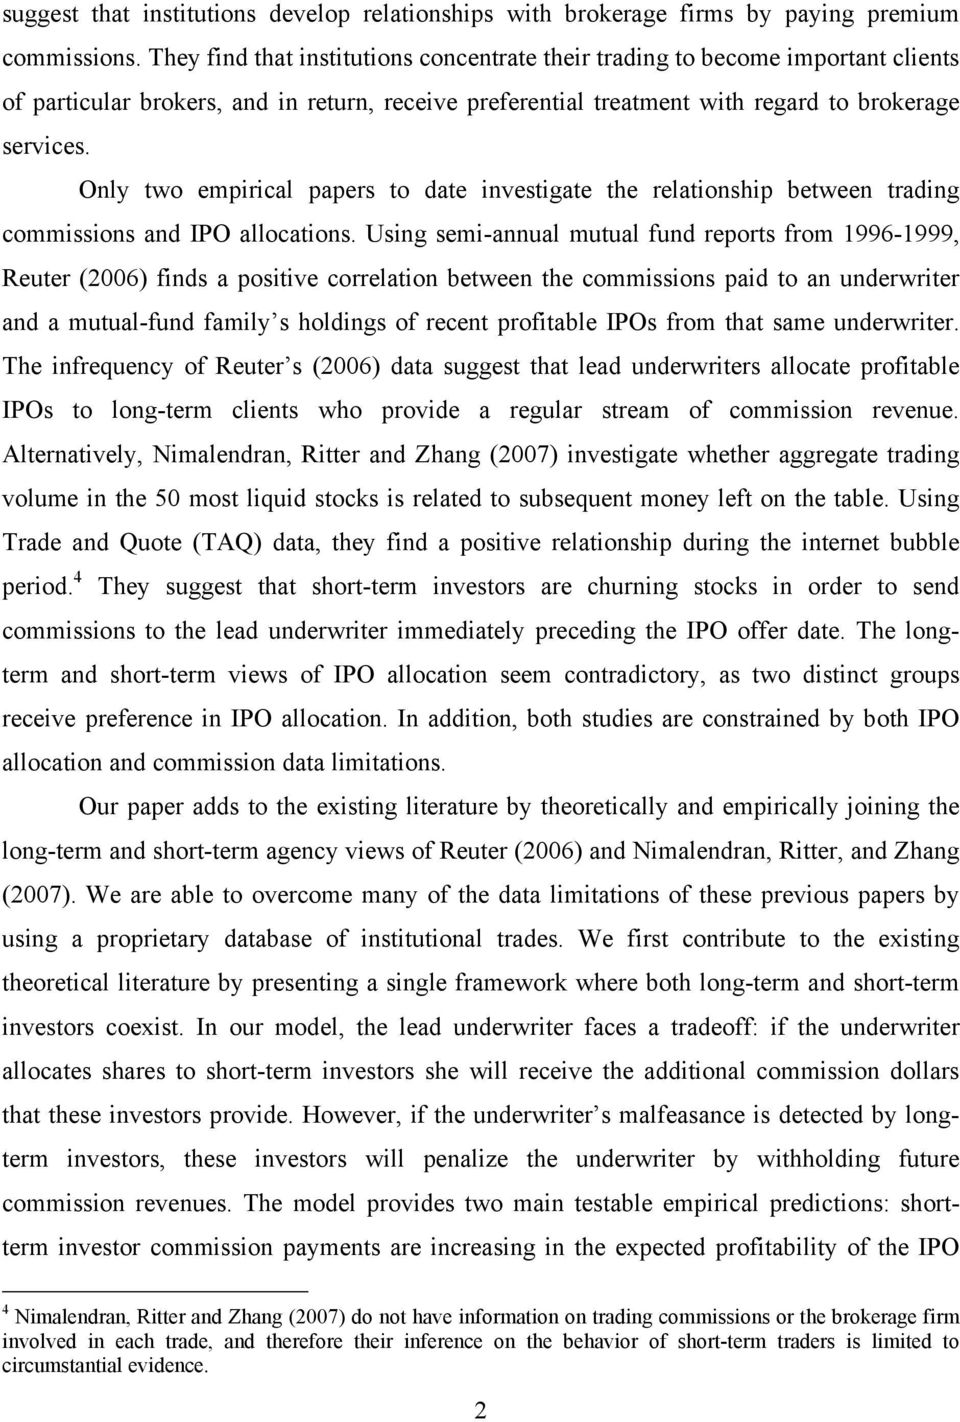 Only two empirical papers to date investigate the relationship between trading commissions and IPO allocations.